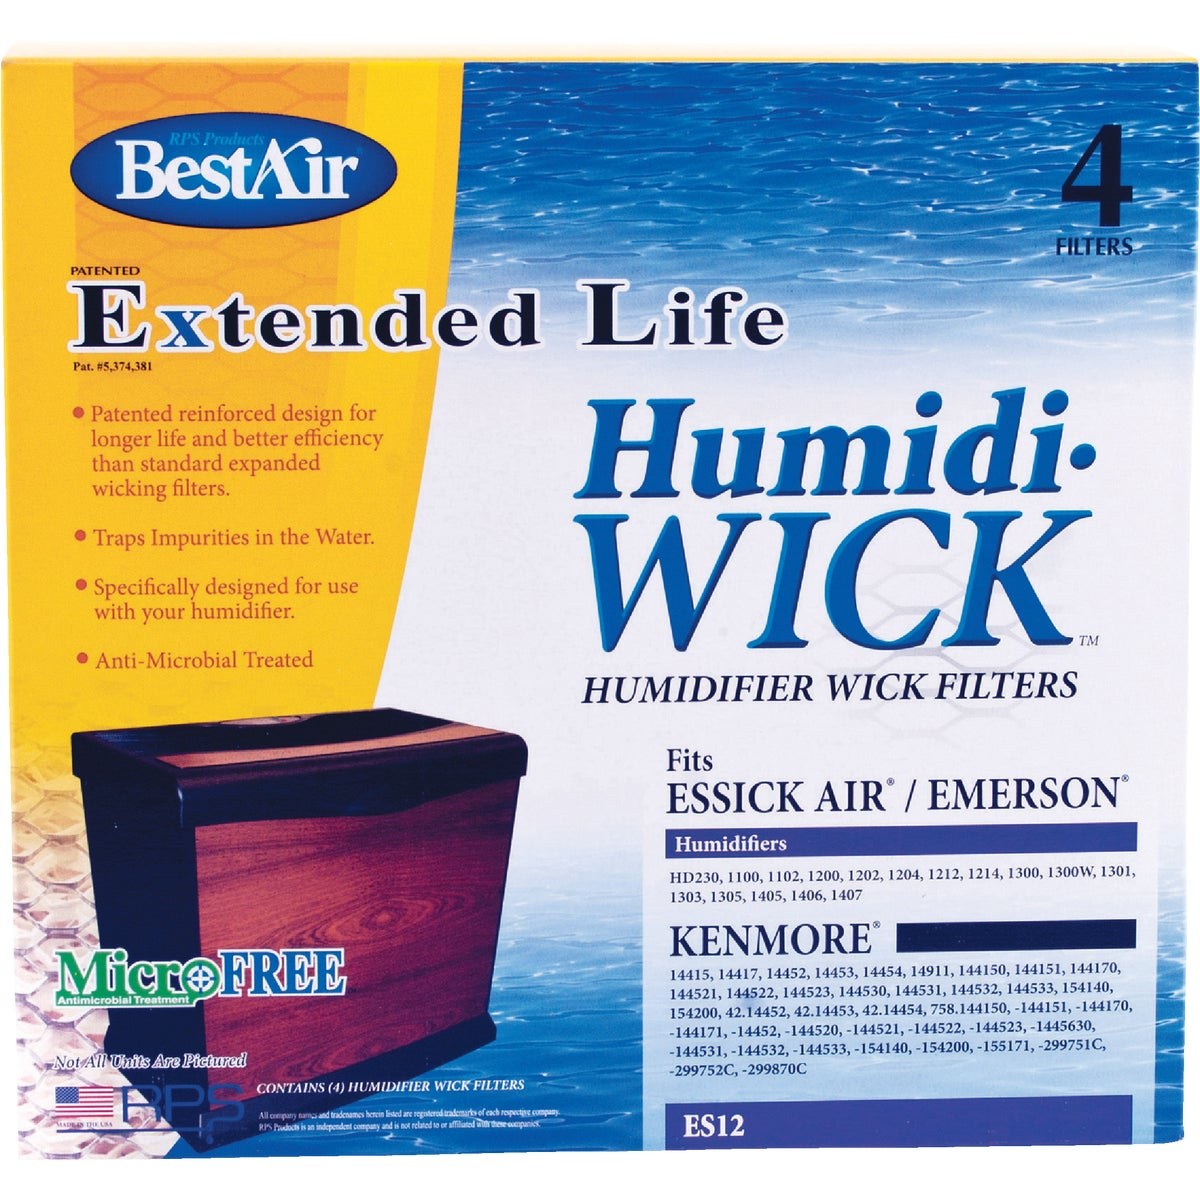 HUMIDIFIER WICK FILTER - ES12 by Rps Products Inc